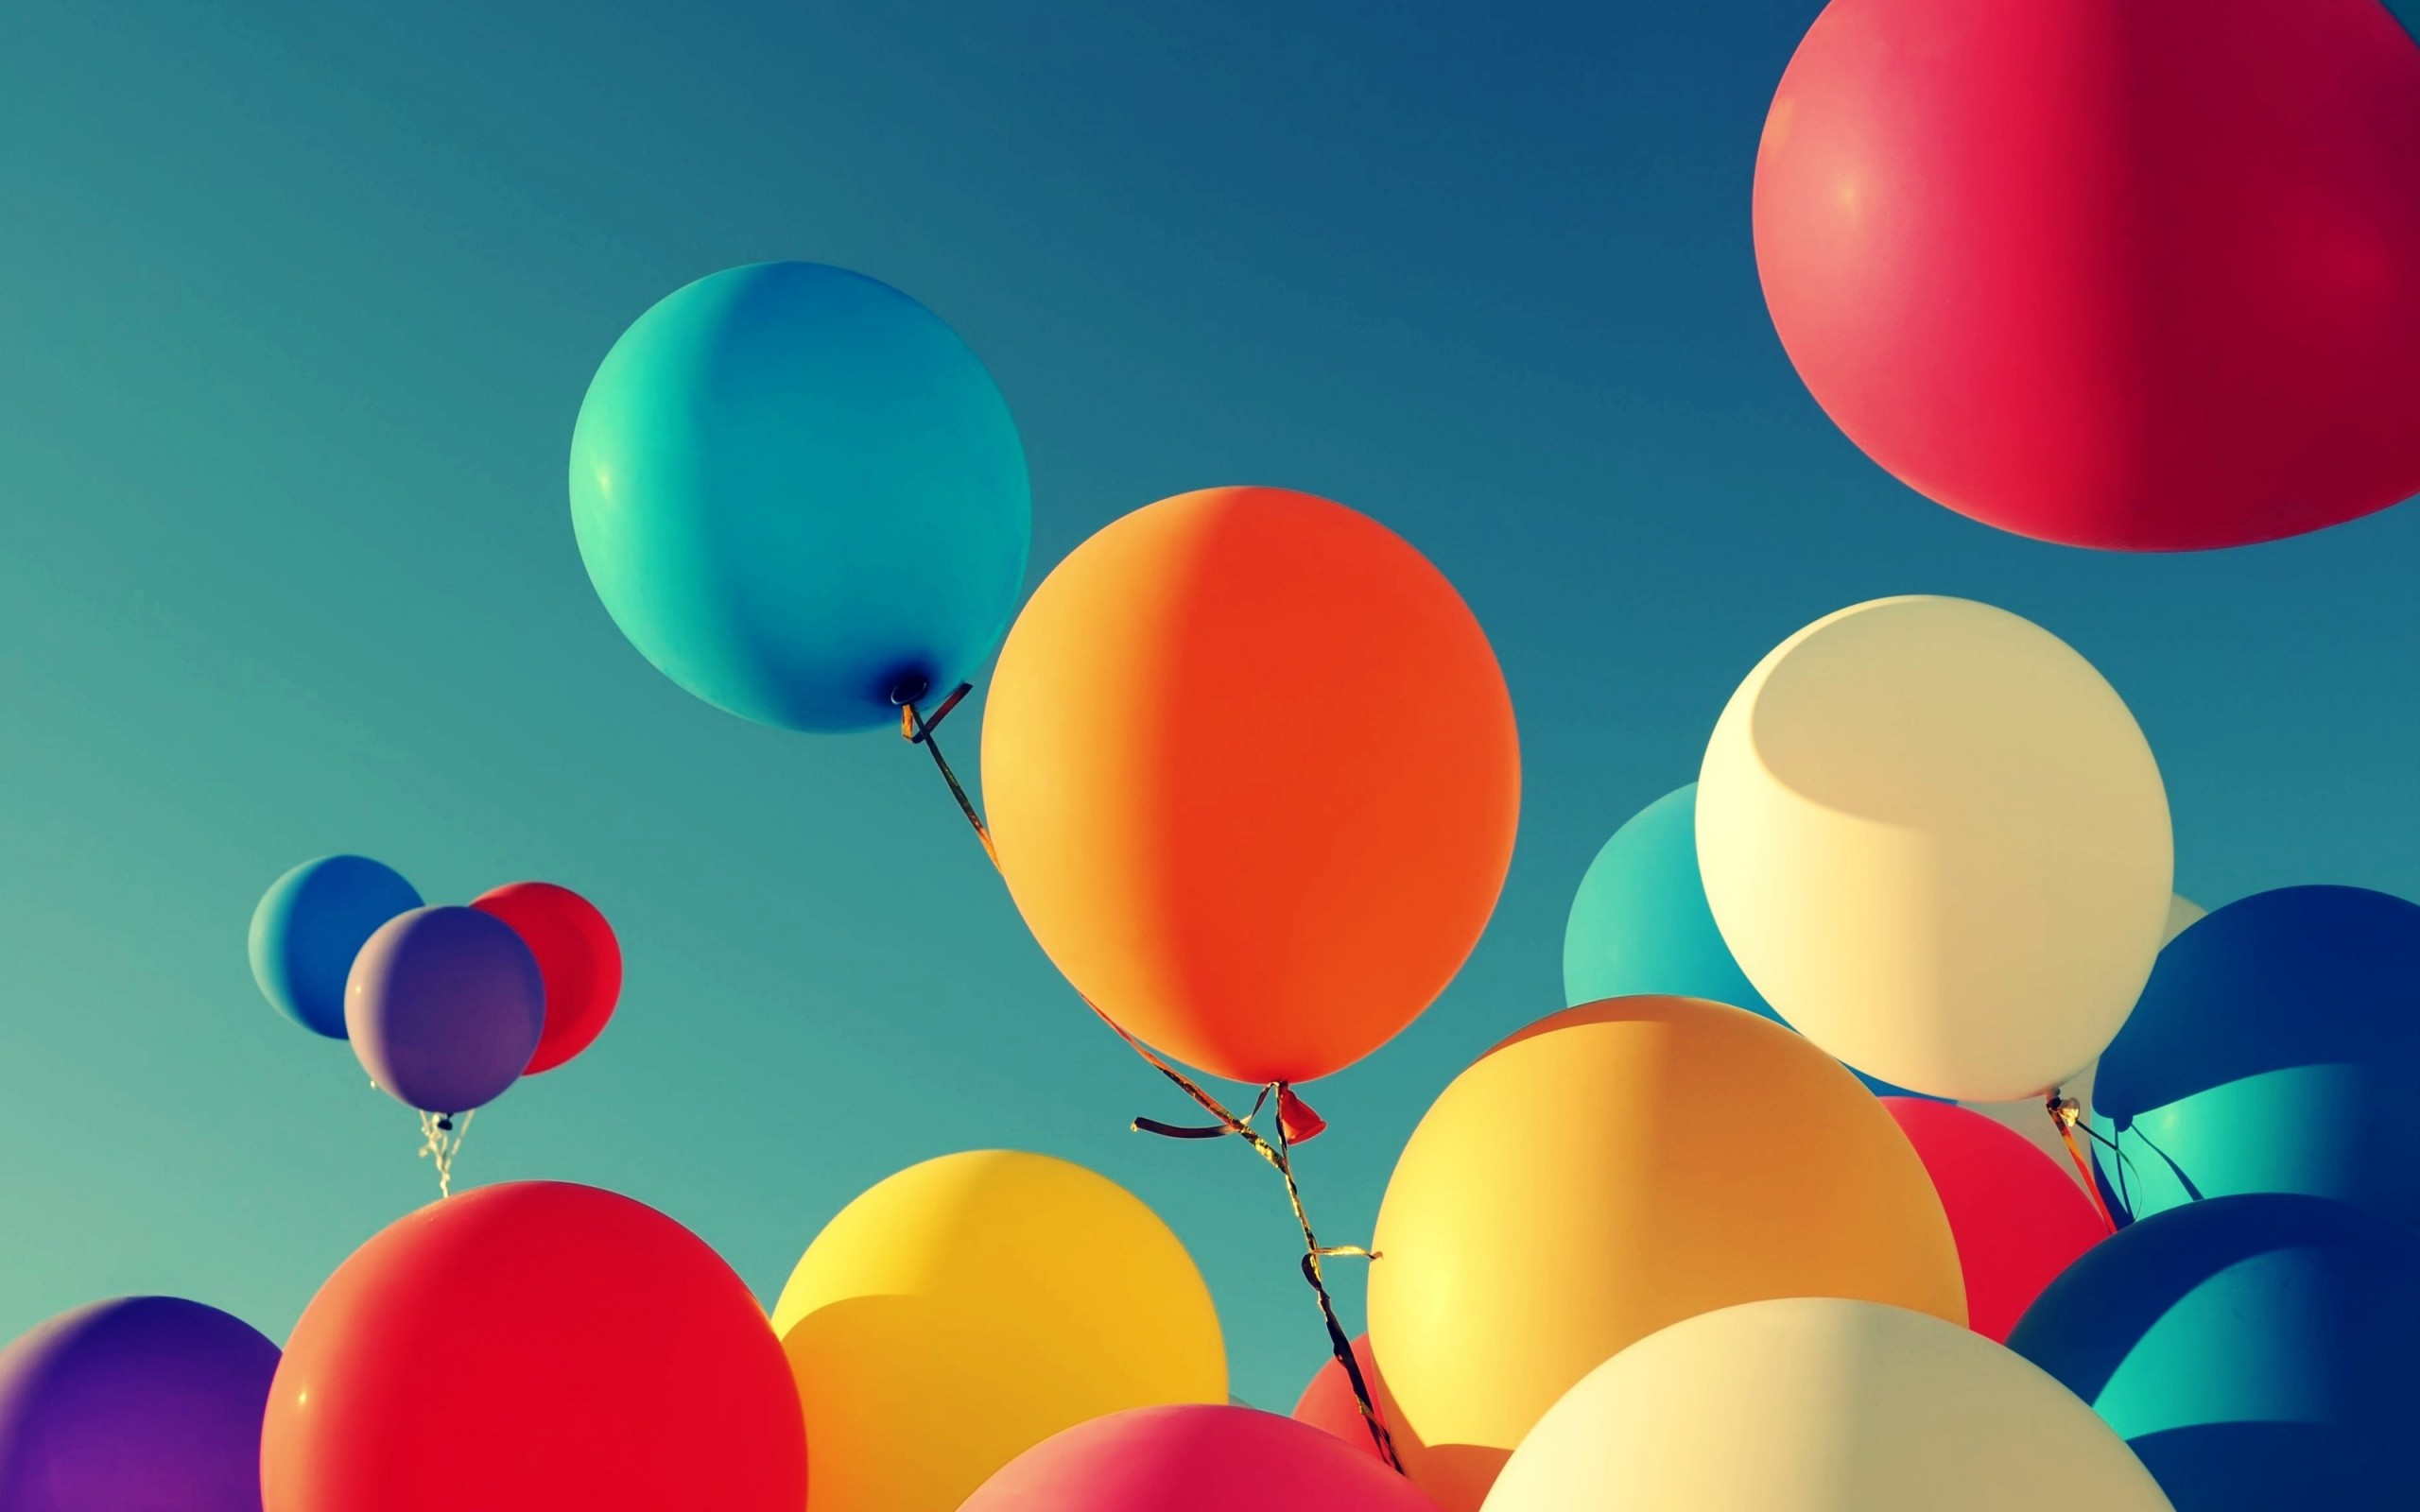 Helium is lighter than air and due to this property, it is usually used to fill balloons airships and blimps.